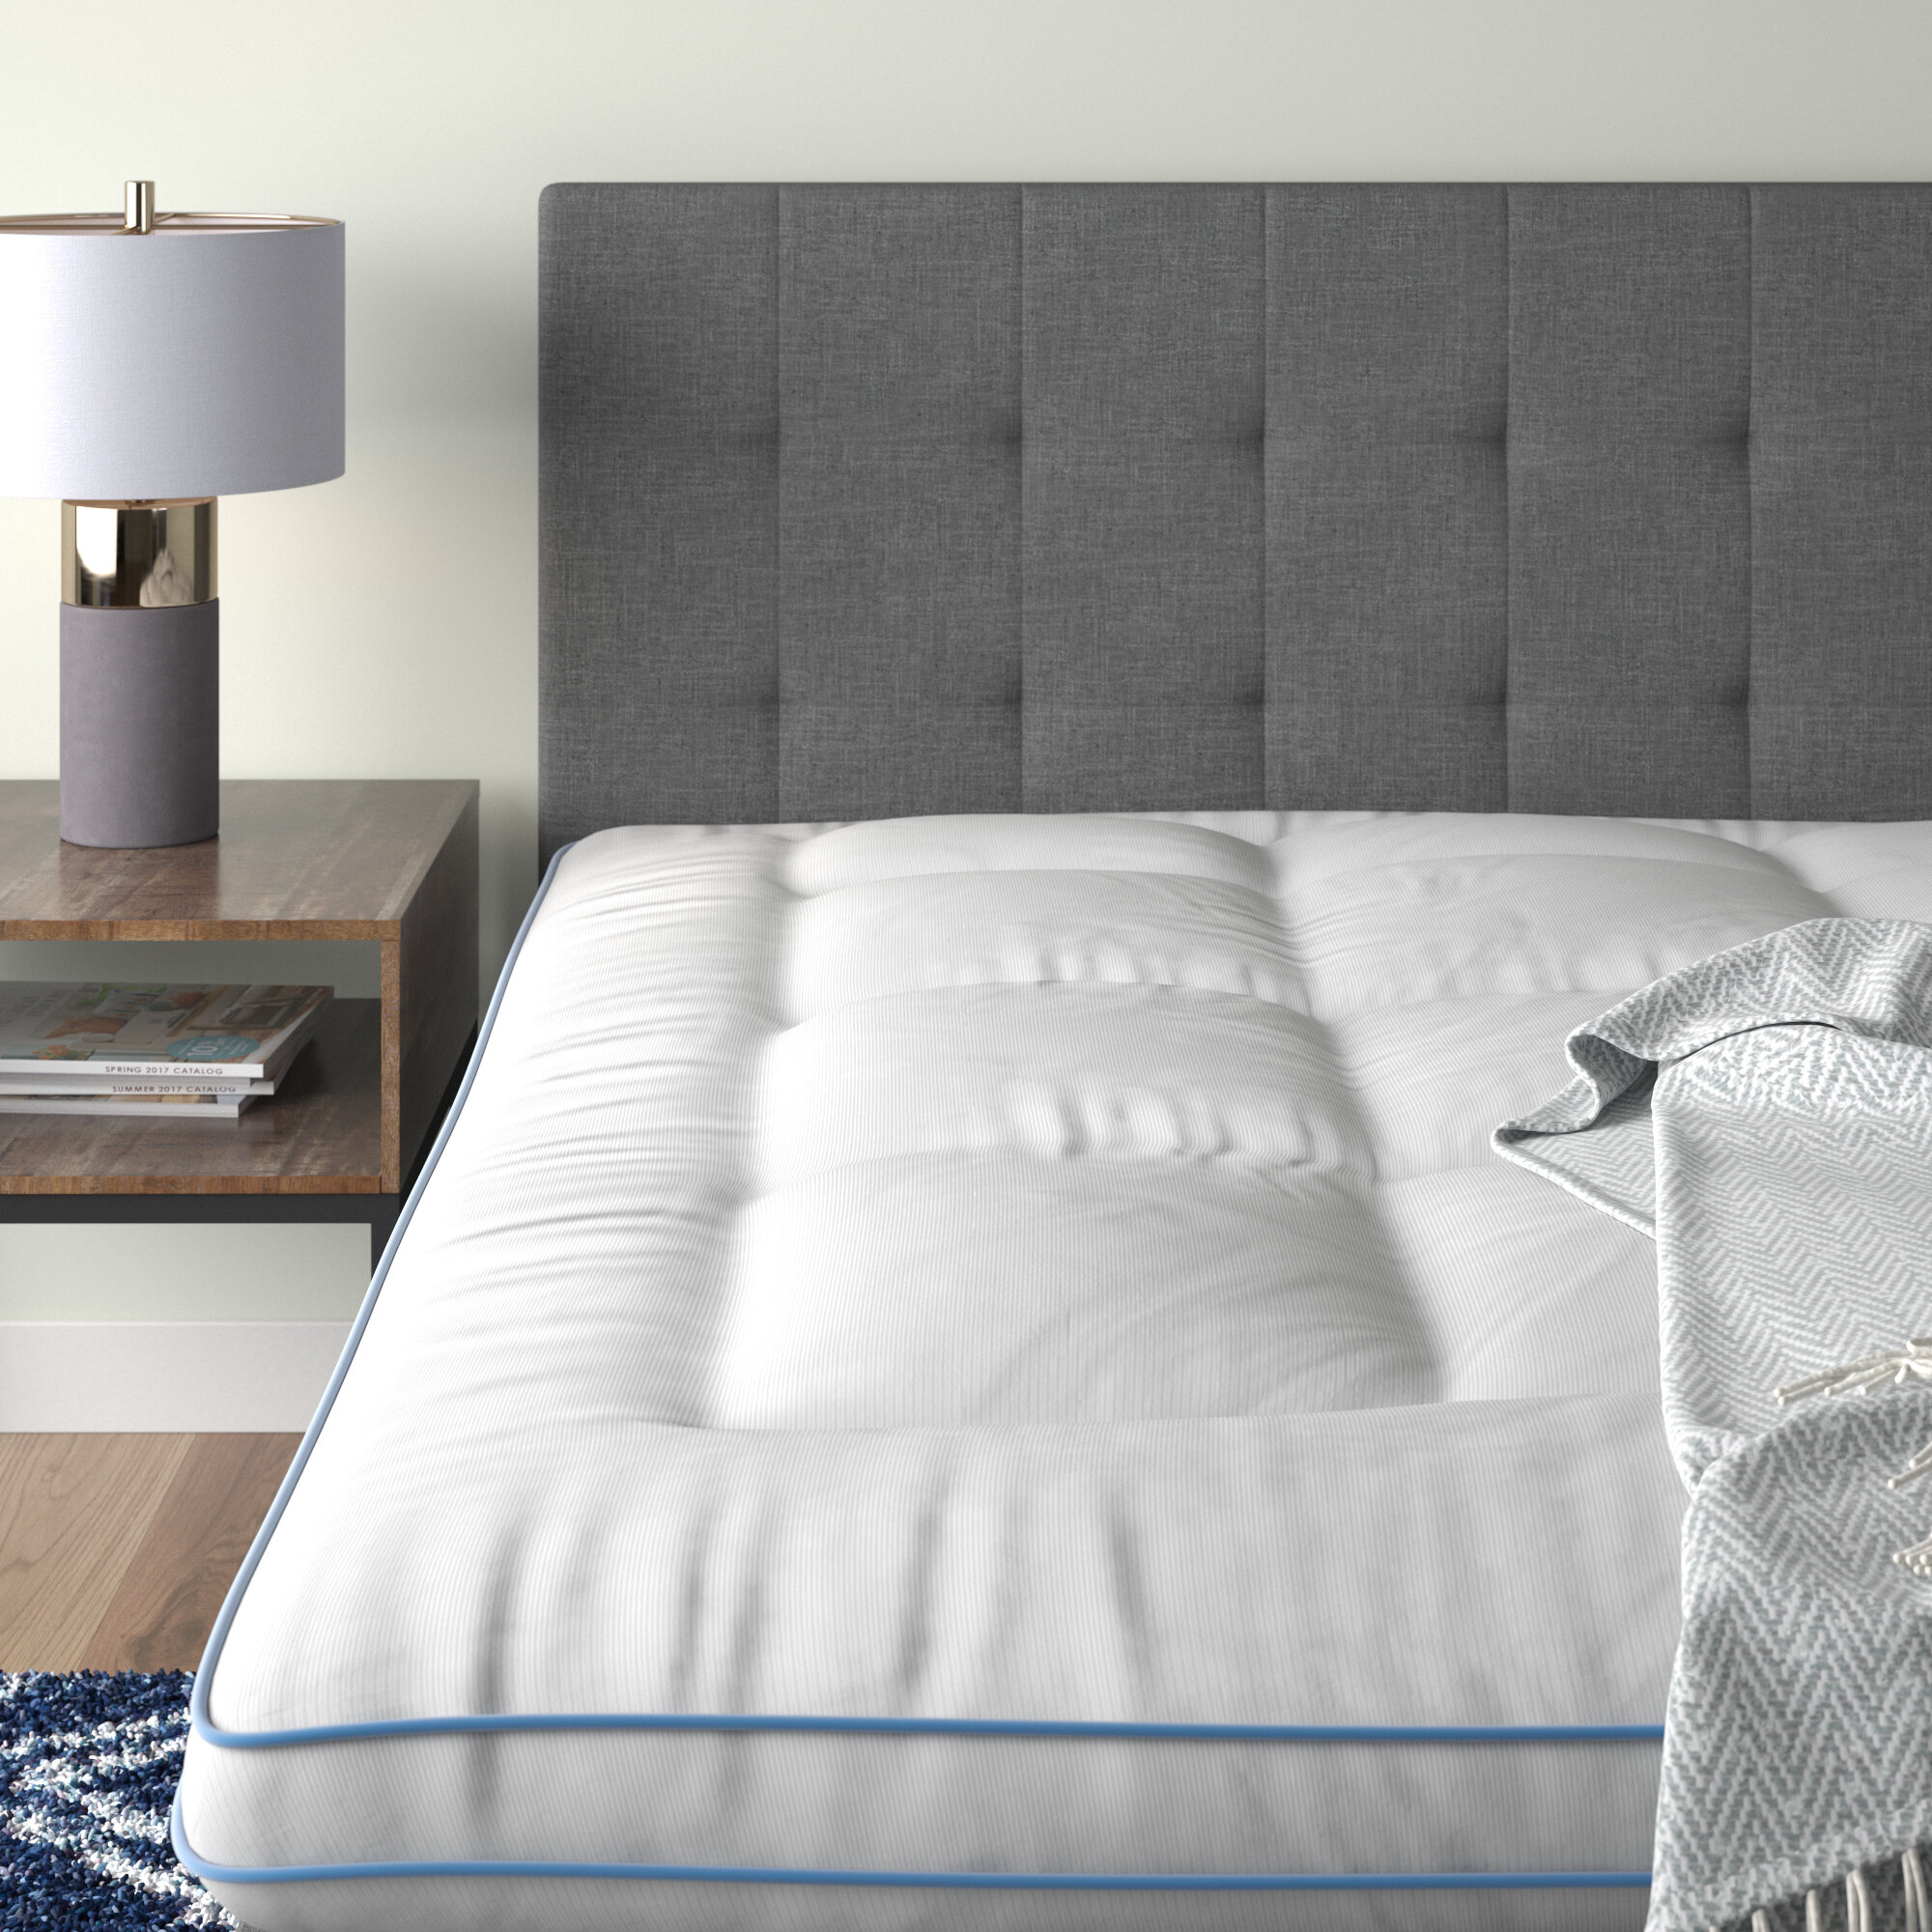 Mattress Pads Toppers You Ll Love In 2021 Wayfair